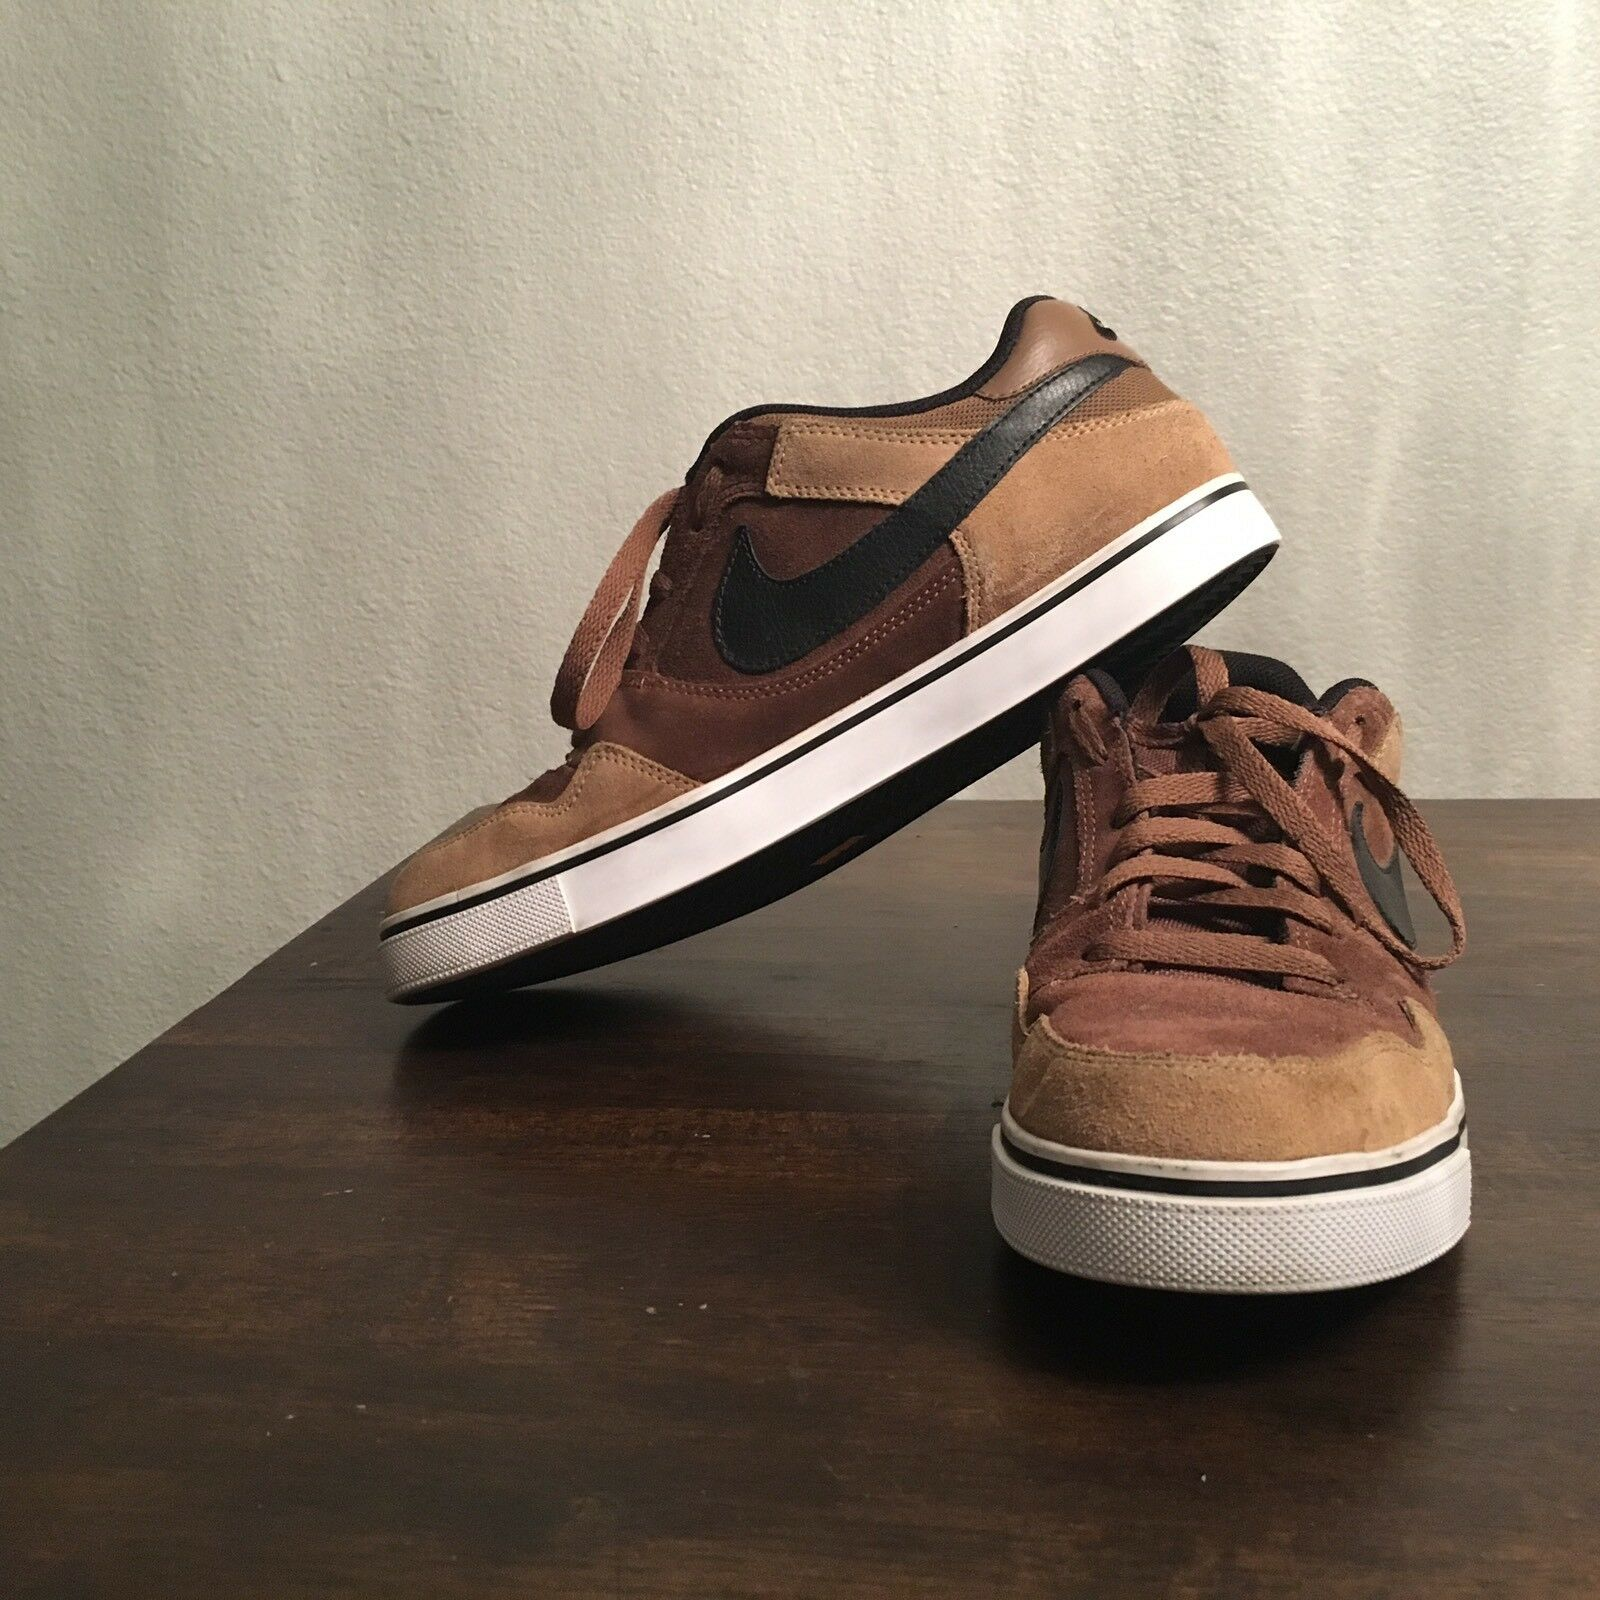 Nike Paul Rodriguez 2.5 Brown Suede Men's Comfortable